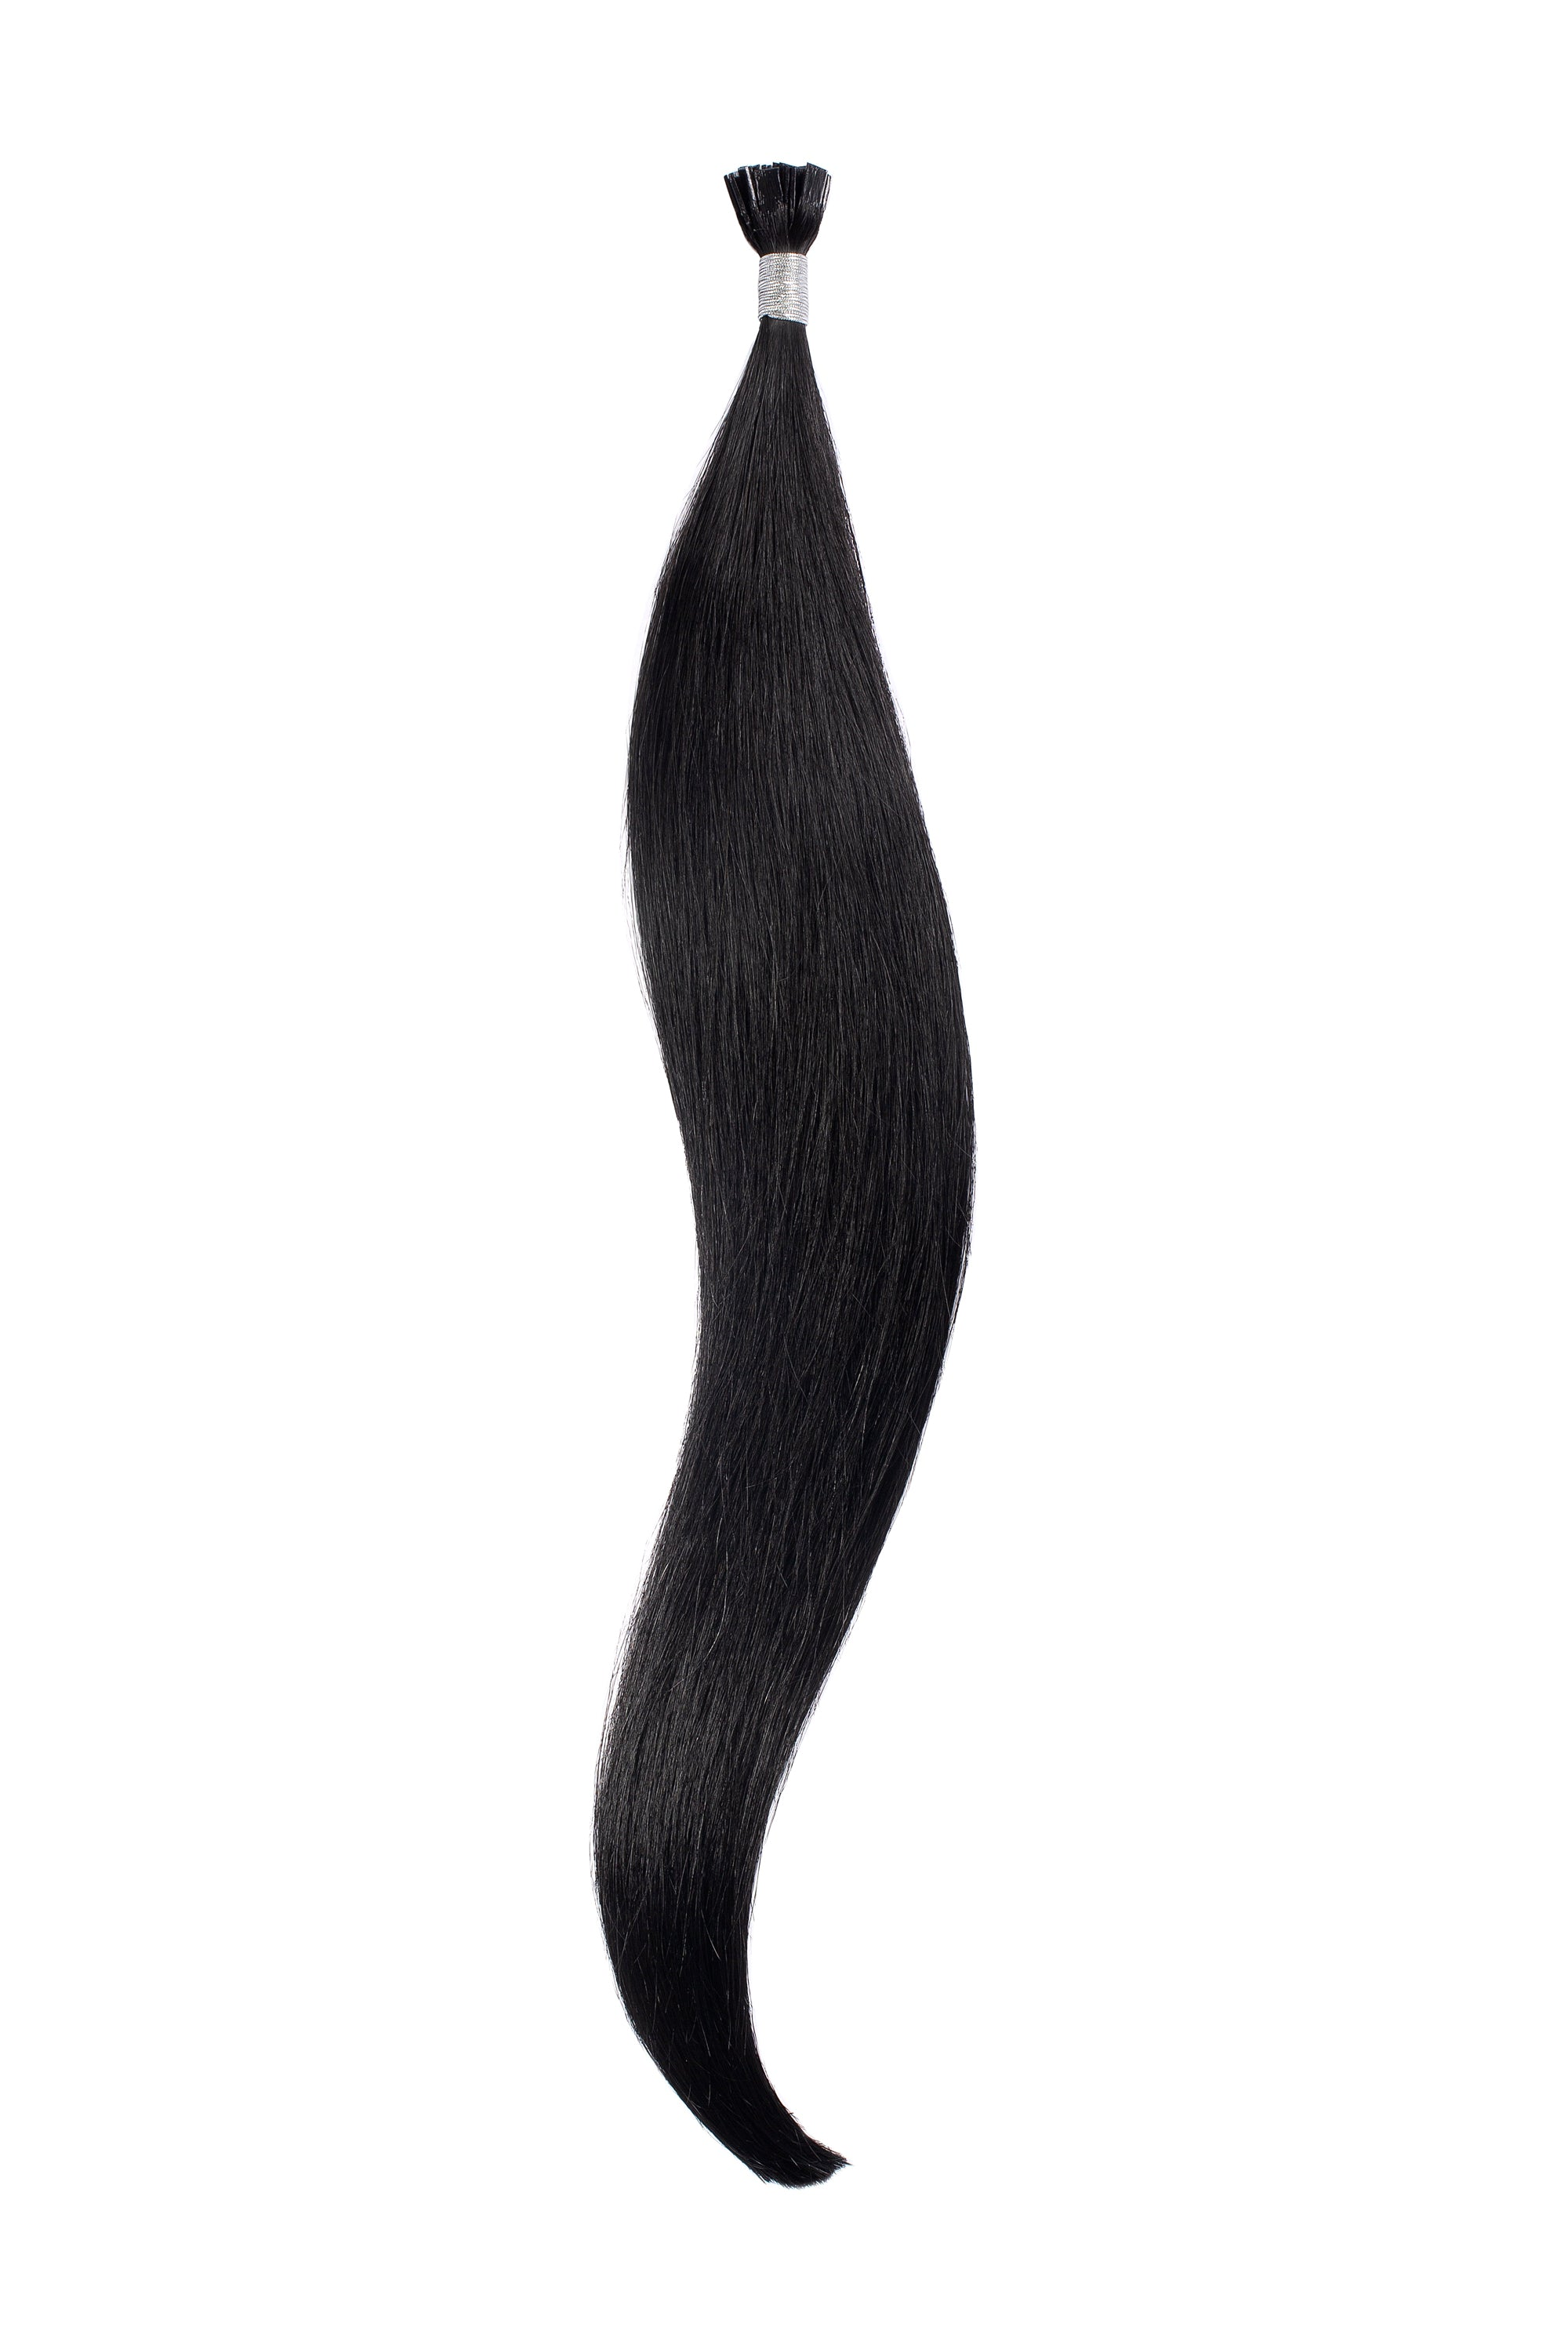 Jet Black (1) Keratin Bond Extension